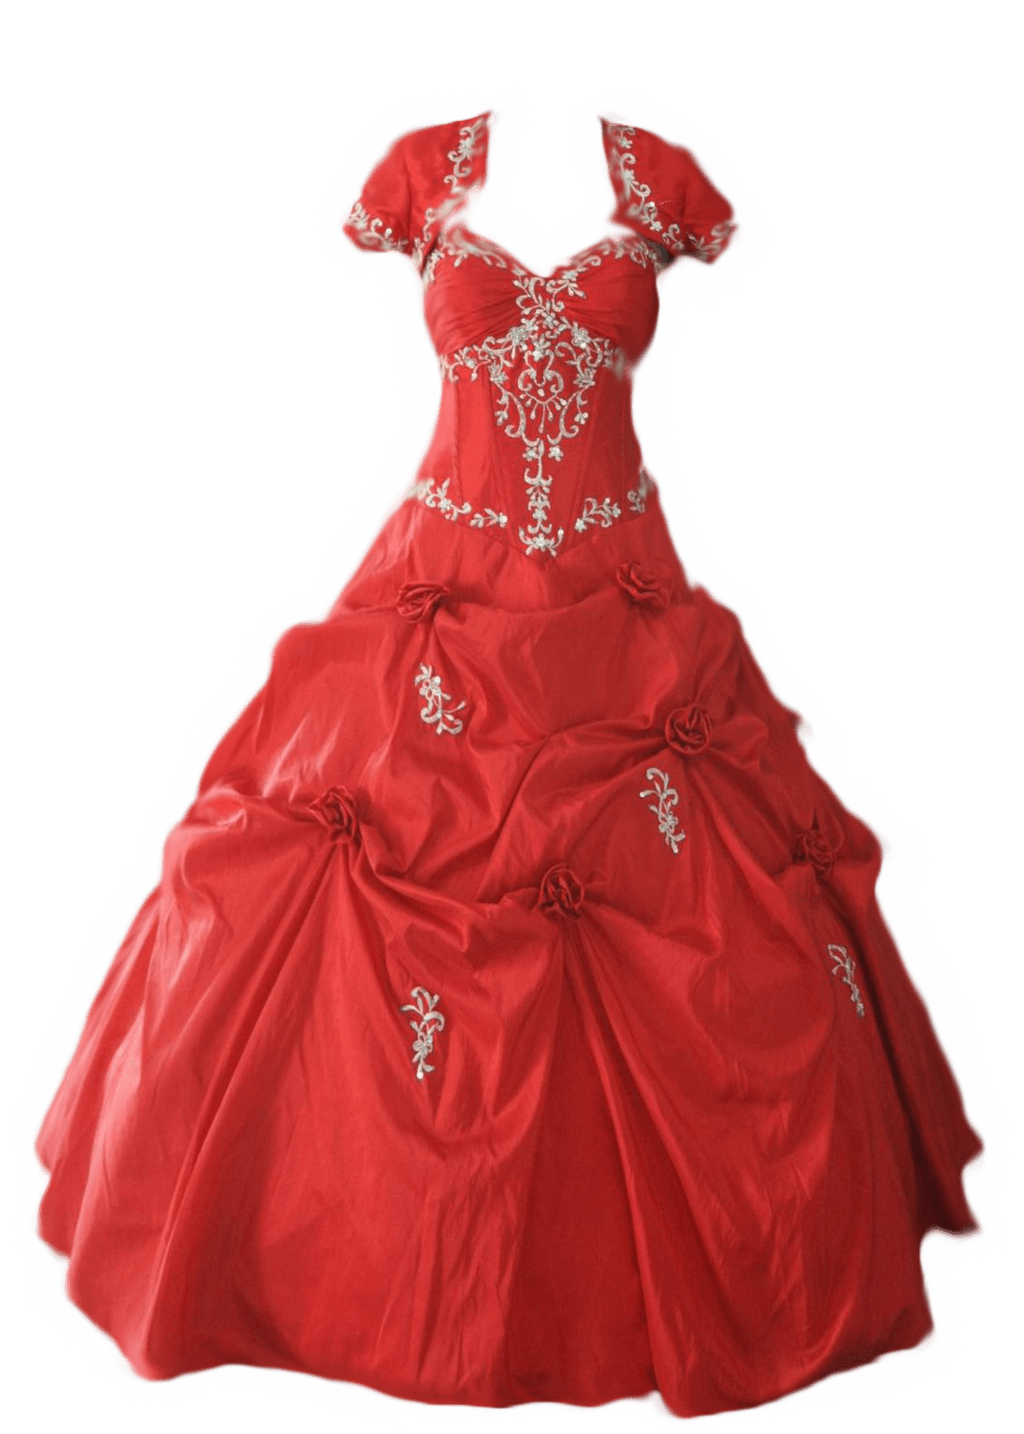 Dress clipart transparent background. Red outfit free on